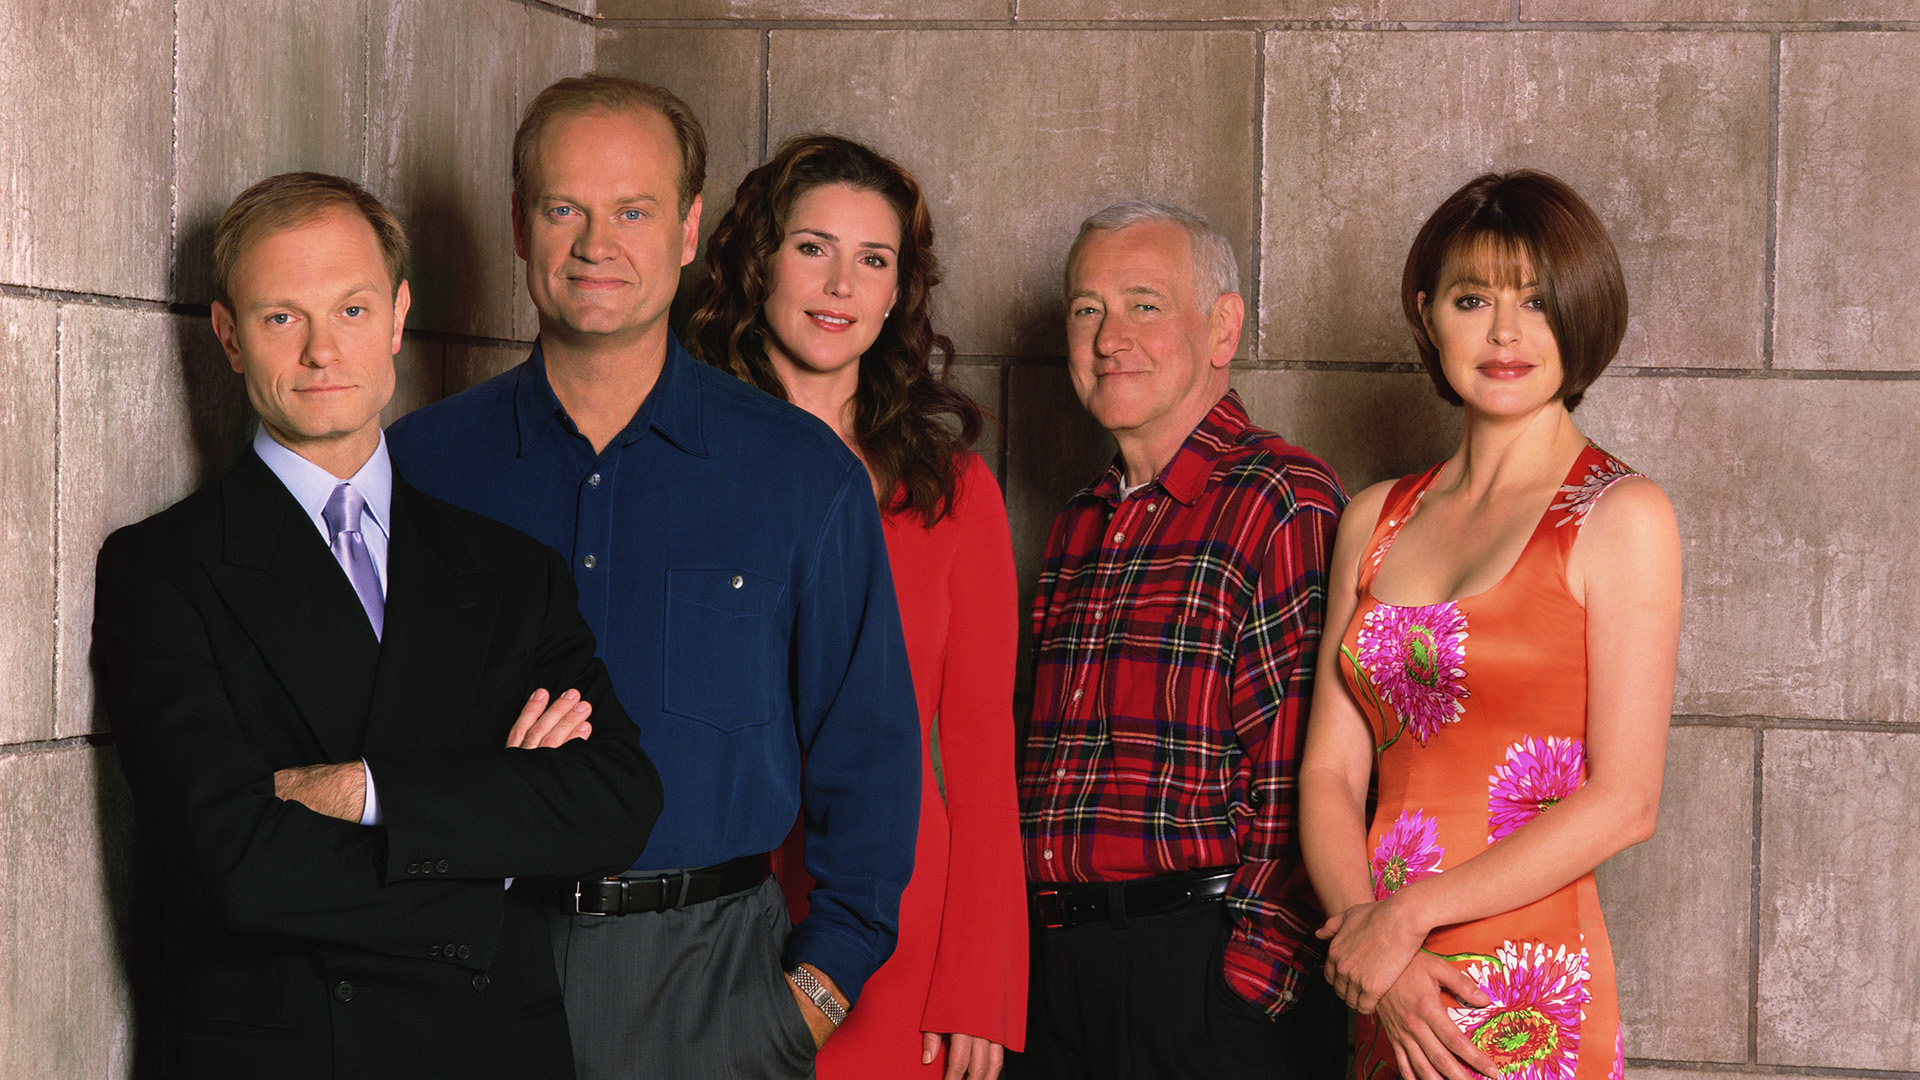 The Cast of Frasier 20 Years Later Where Are They Now